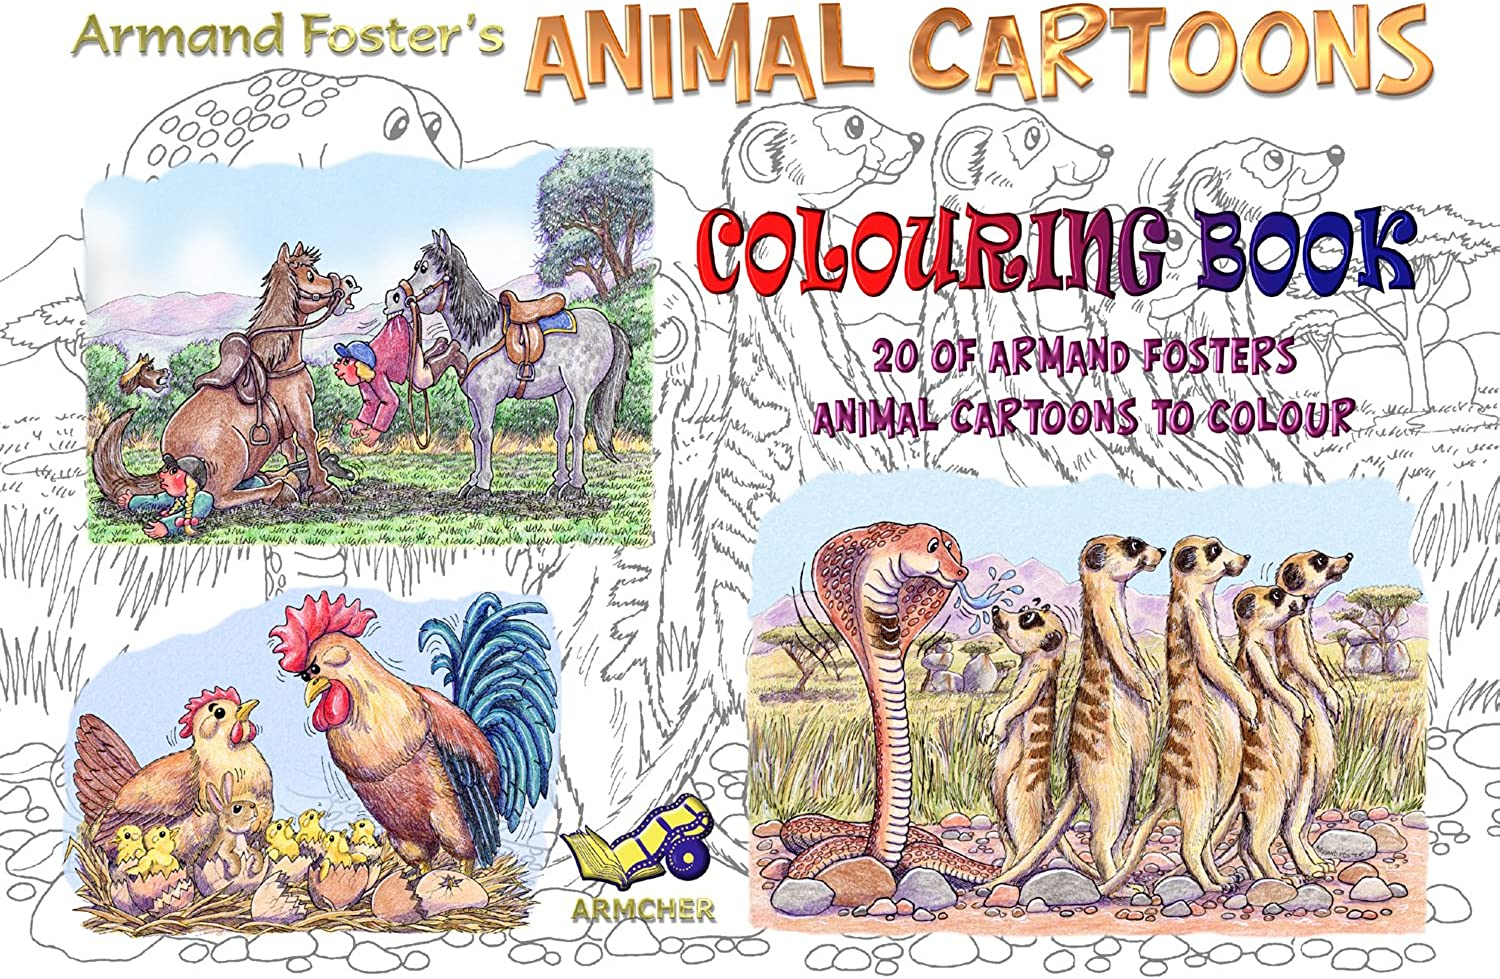 COLOURING BOOK SET No. 2 - ANIMAL CARTOONS - A4 - ARMAND FOSTER B0119T03FW  | Vogue